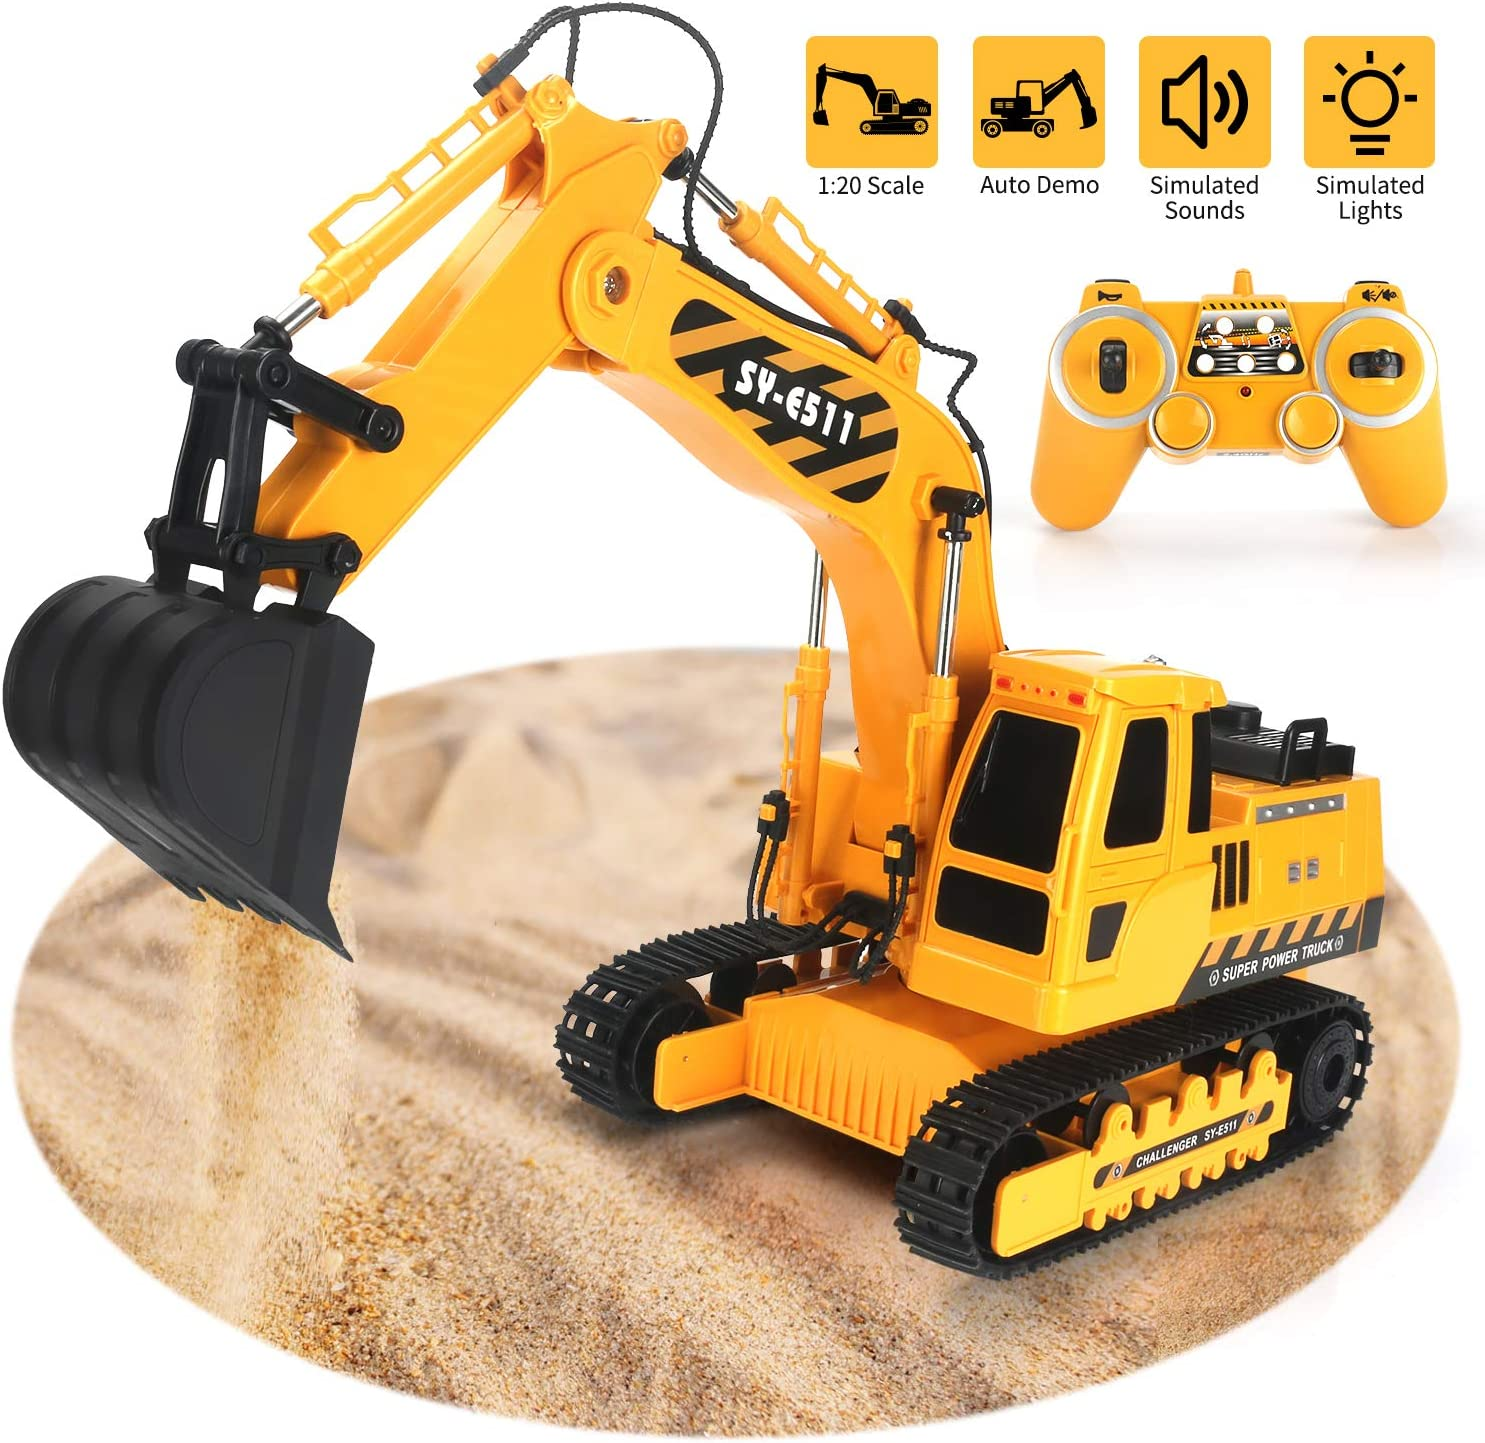 Tuptoel Excavator Toy 2.4GHz Remote Control Excavator, 11 Channel Fully Functional 1/20 Construction Vehicles Trucks with Rechargeable Battery Simulated Lights Sounds, Birthday for Kids